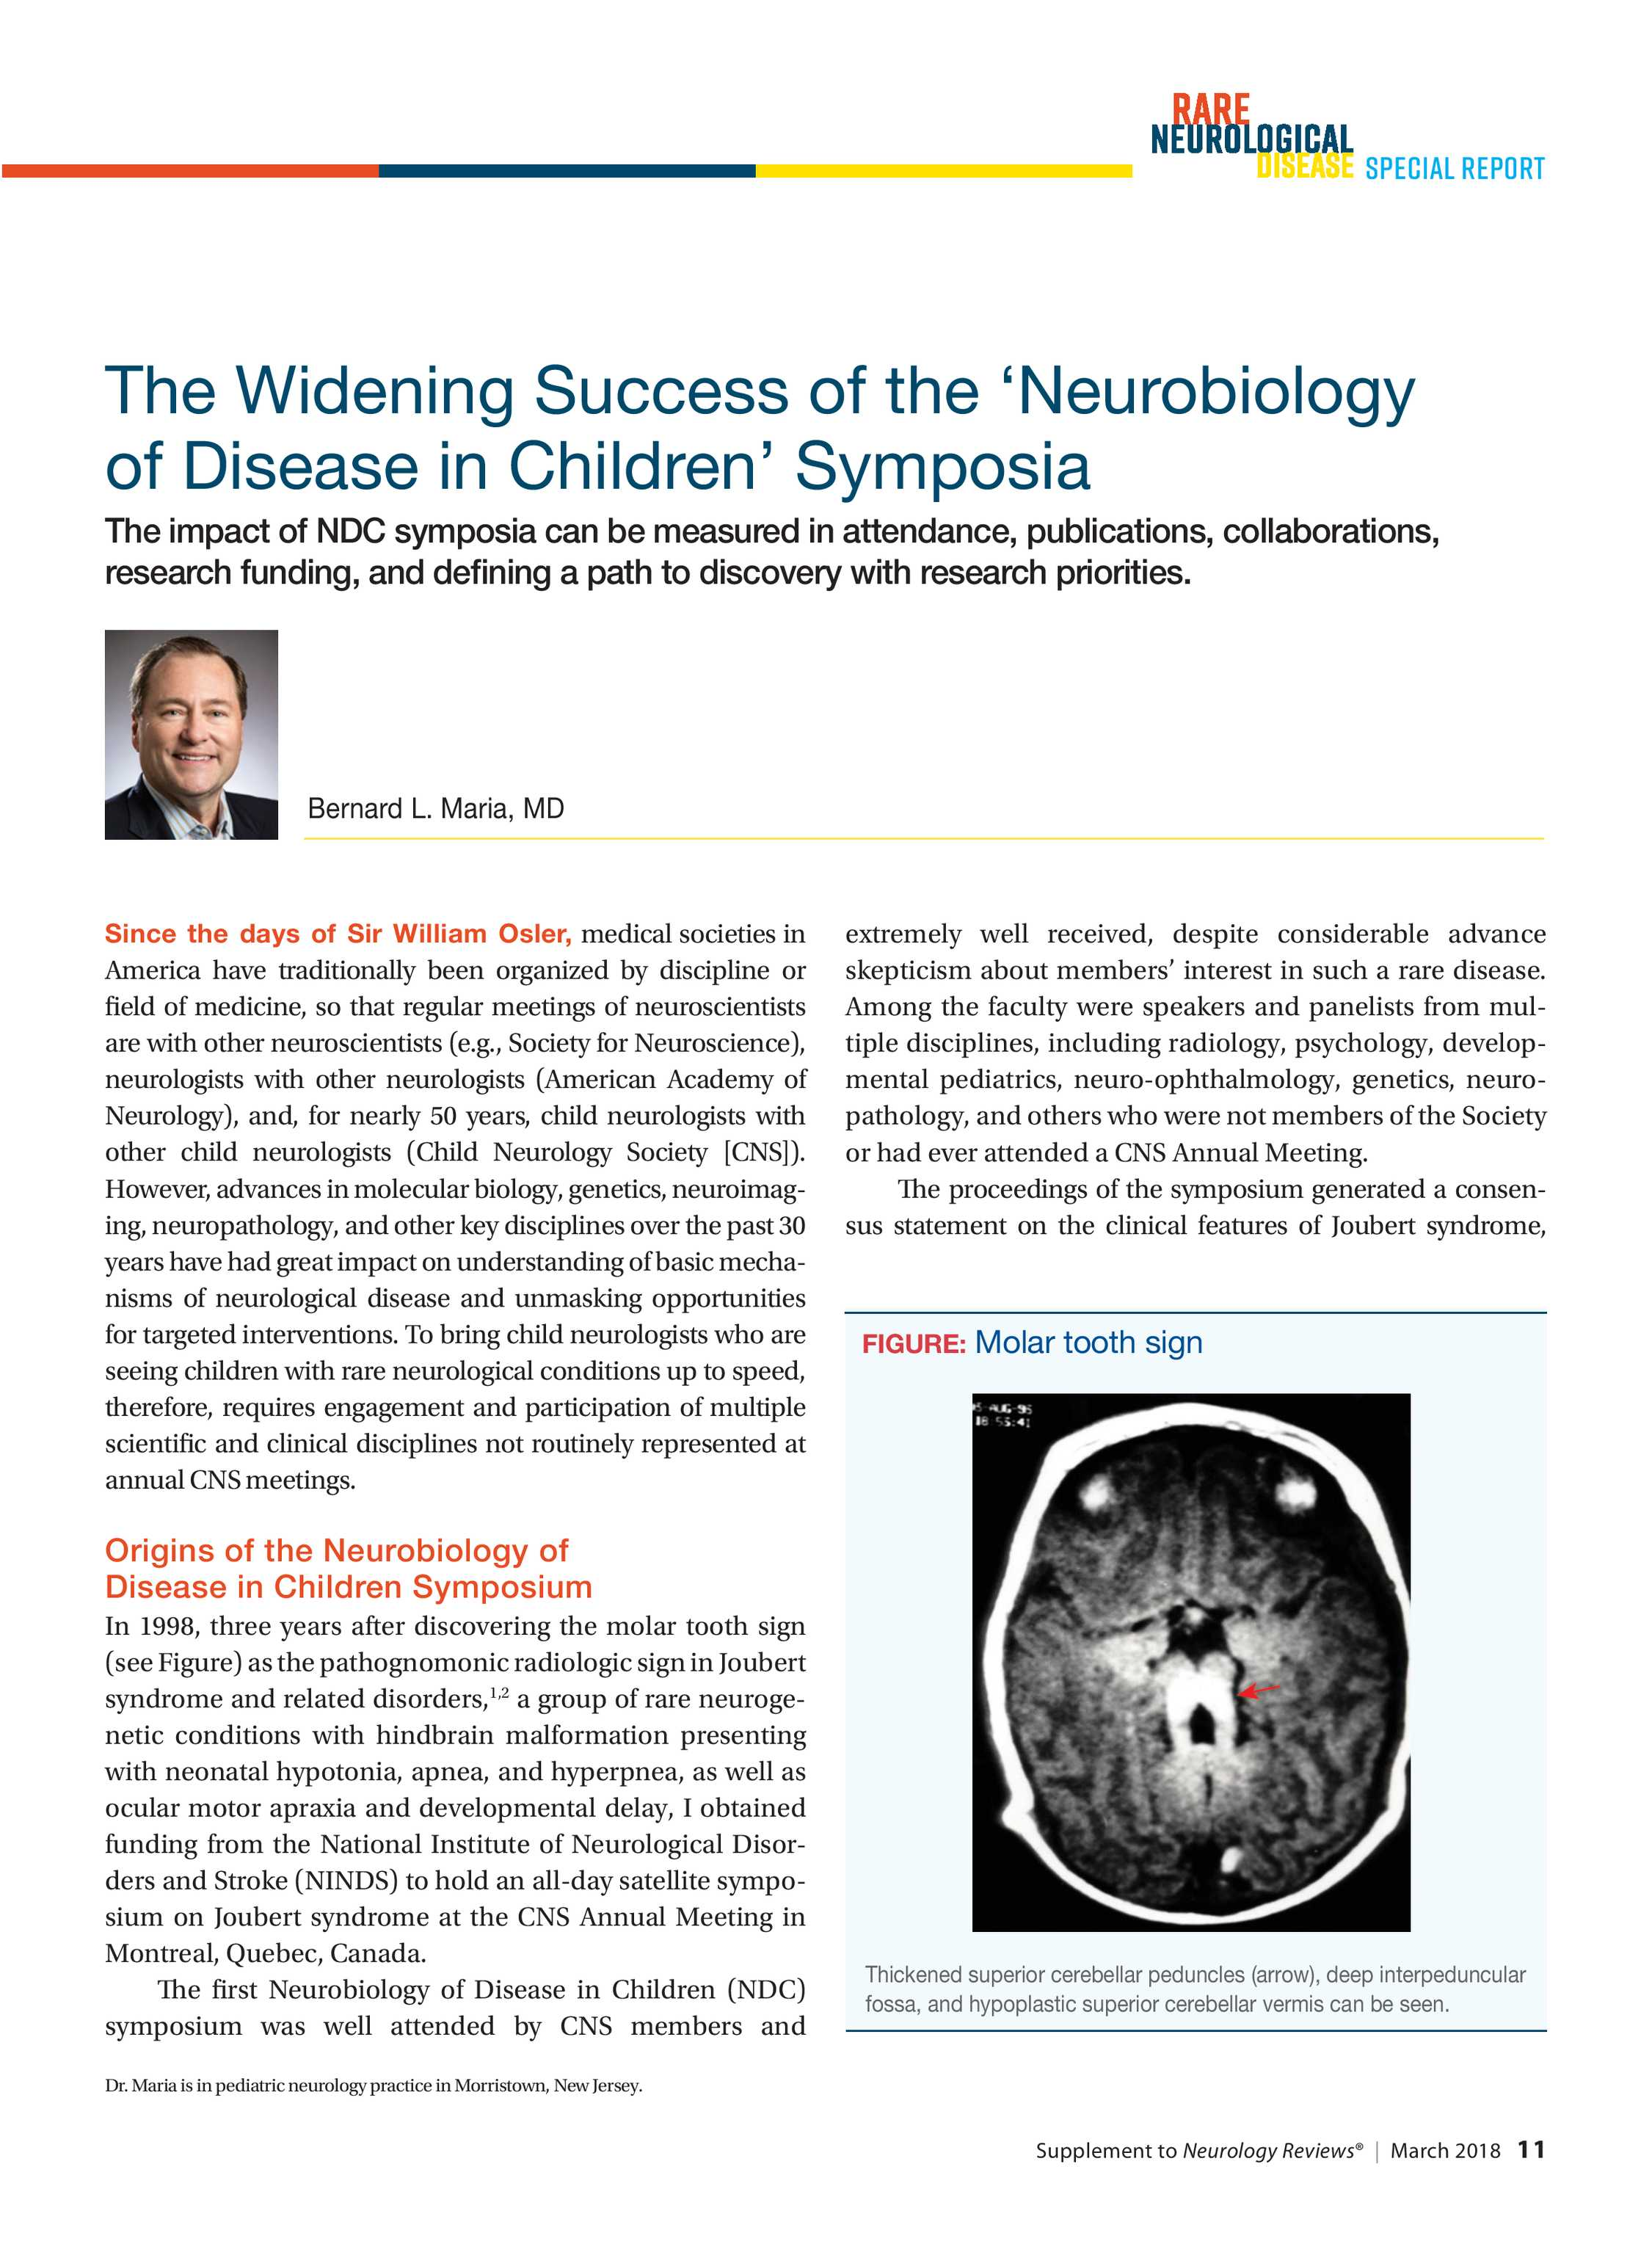 neurology reviews - nord supplement 0318 - page 11